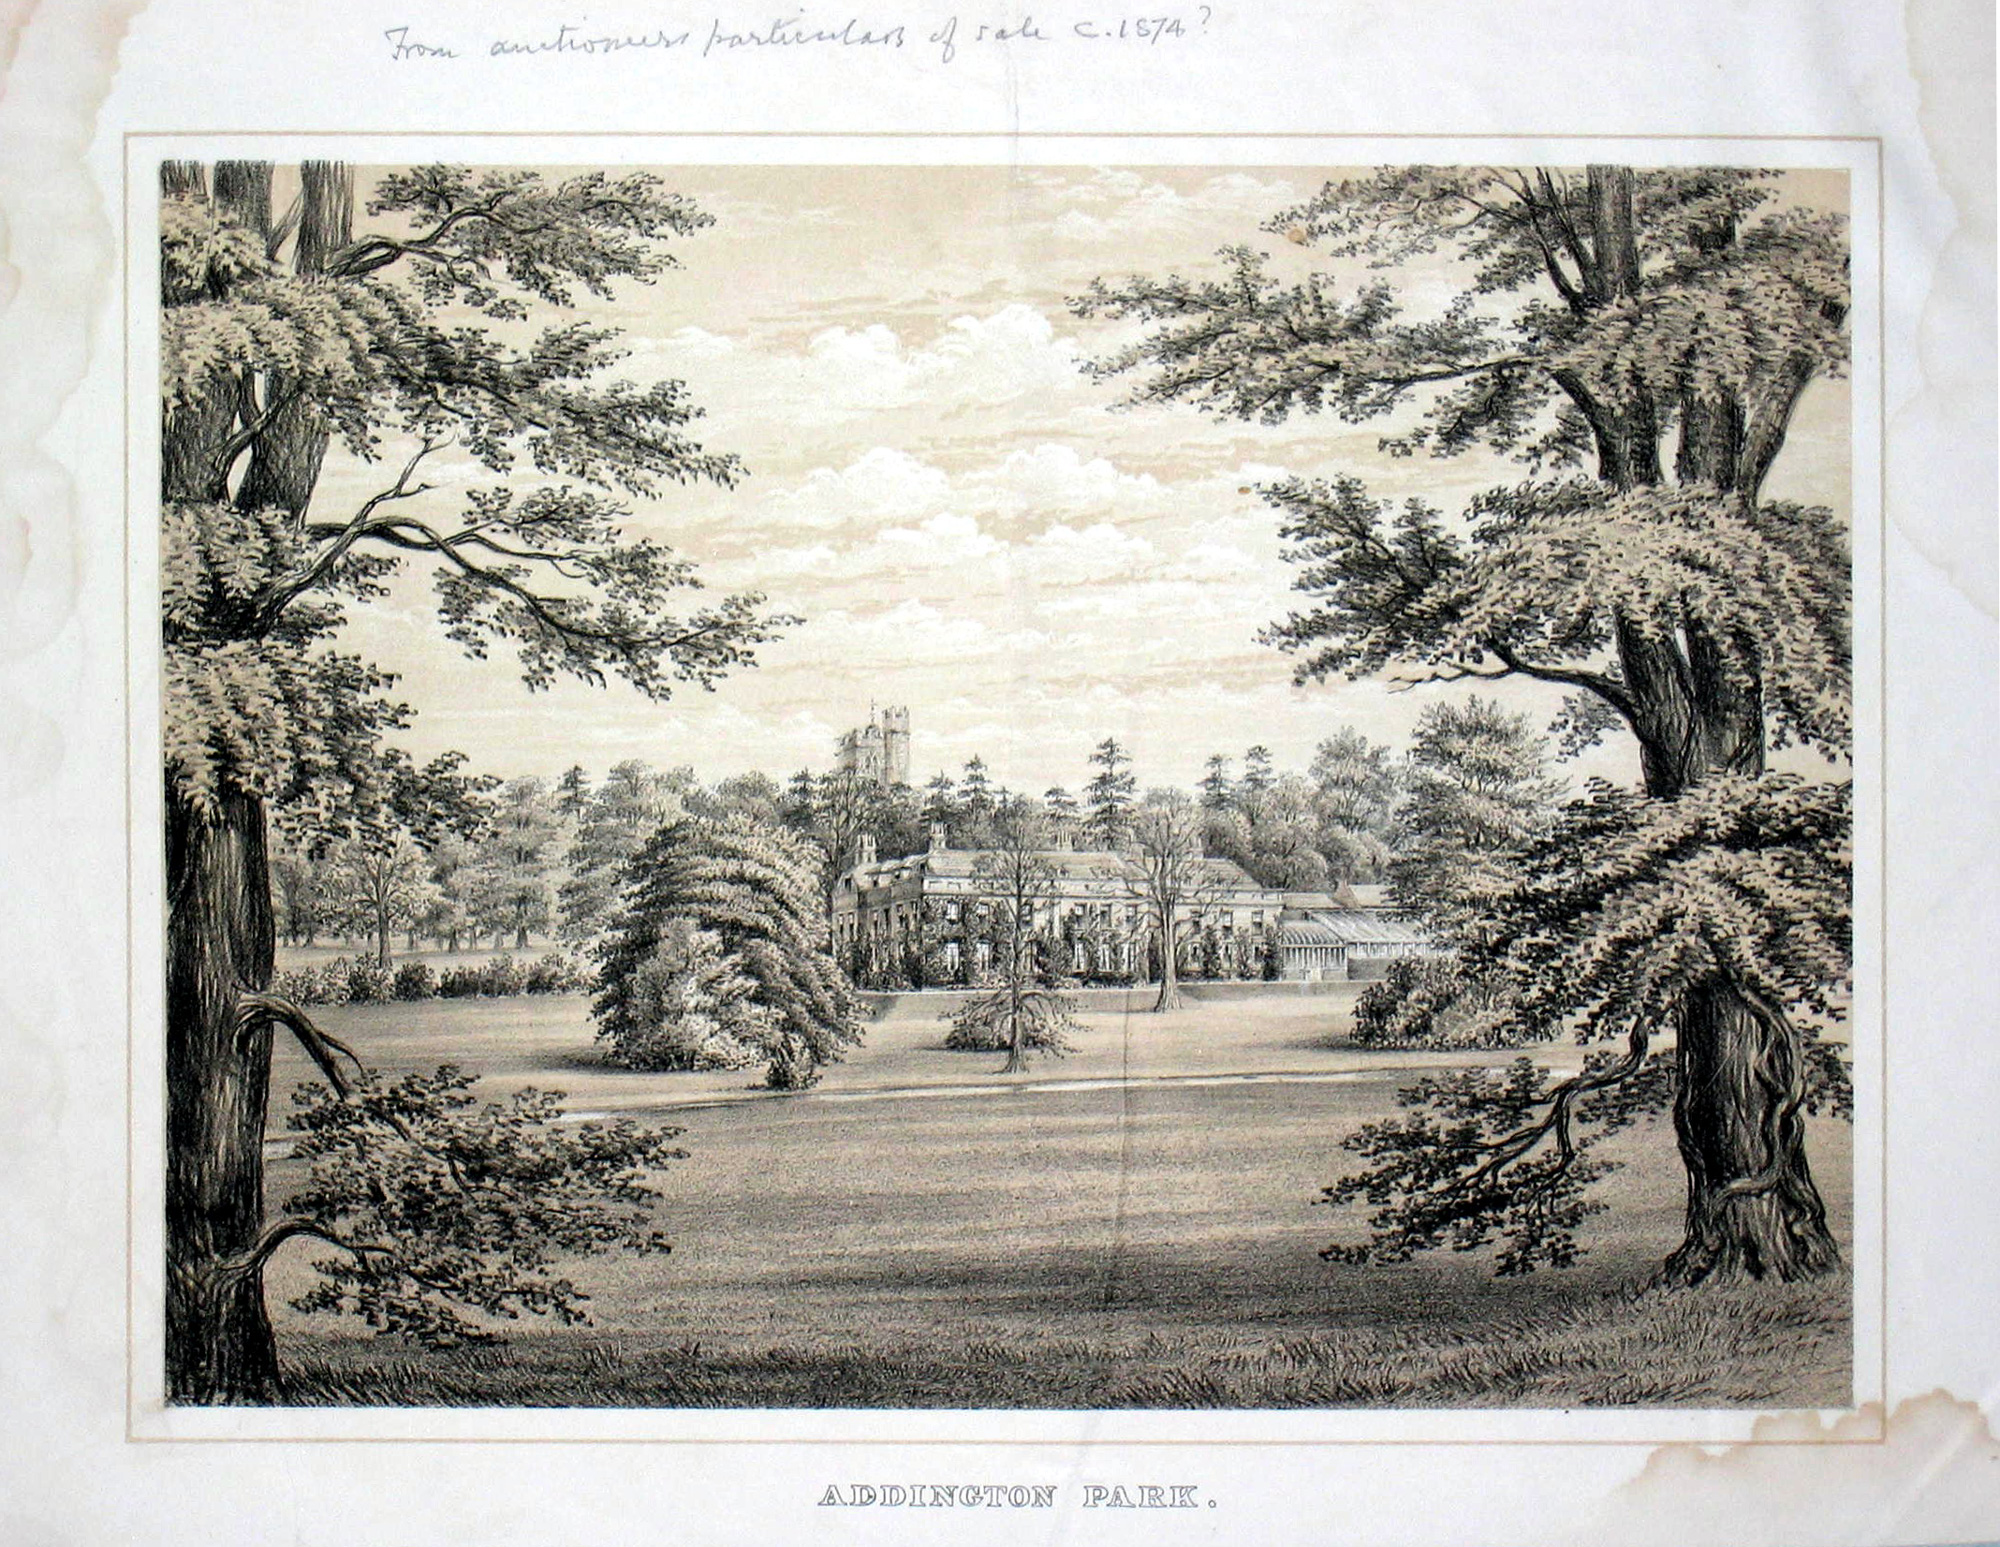 Addington Park 1883